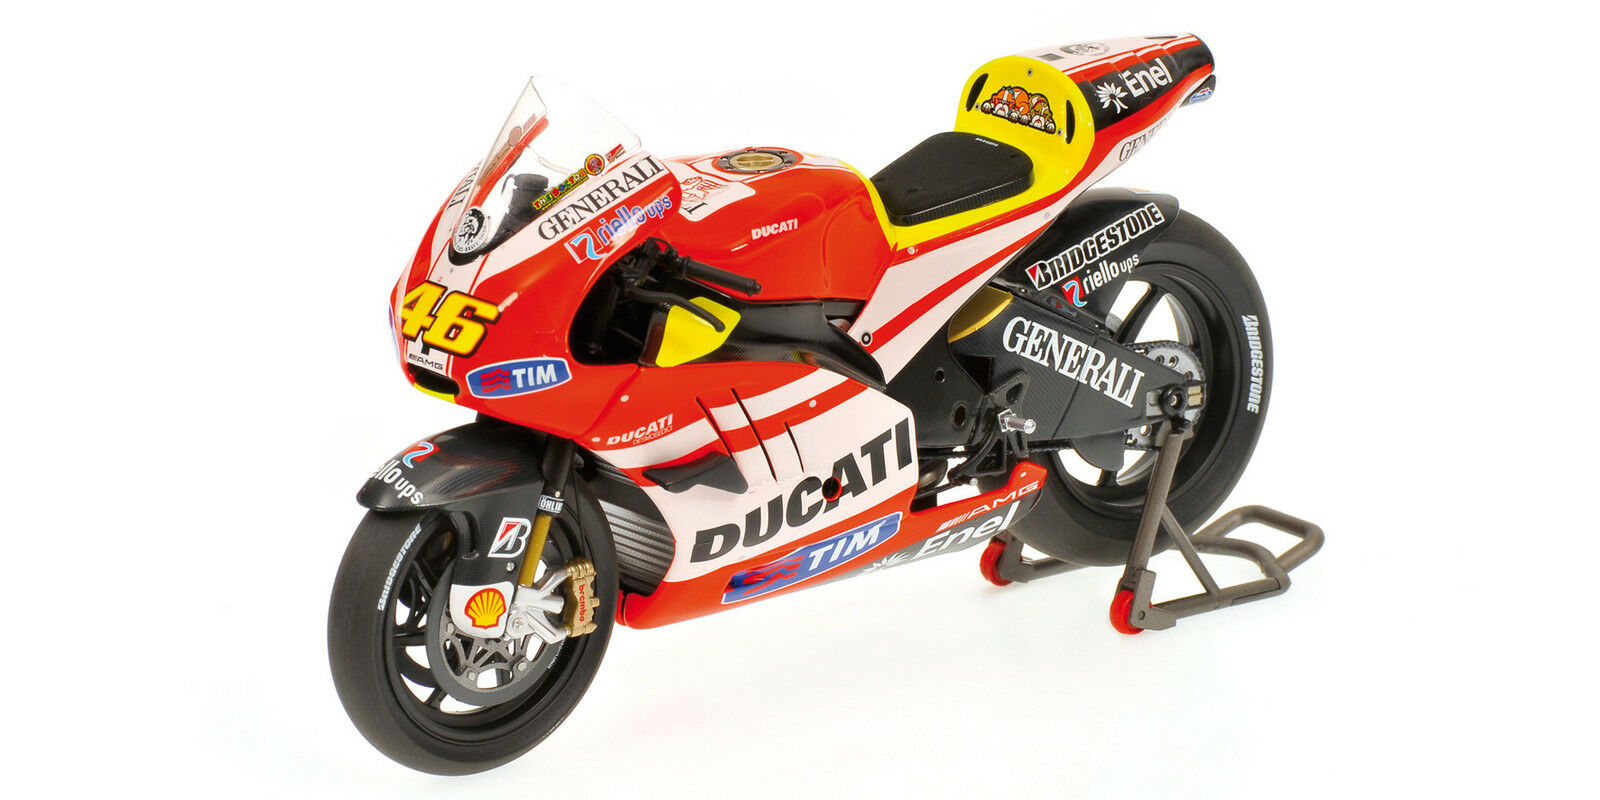 Ducati Desmosedici Valentino Rossi Valencia Press Version 2011 1 12 Model